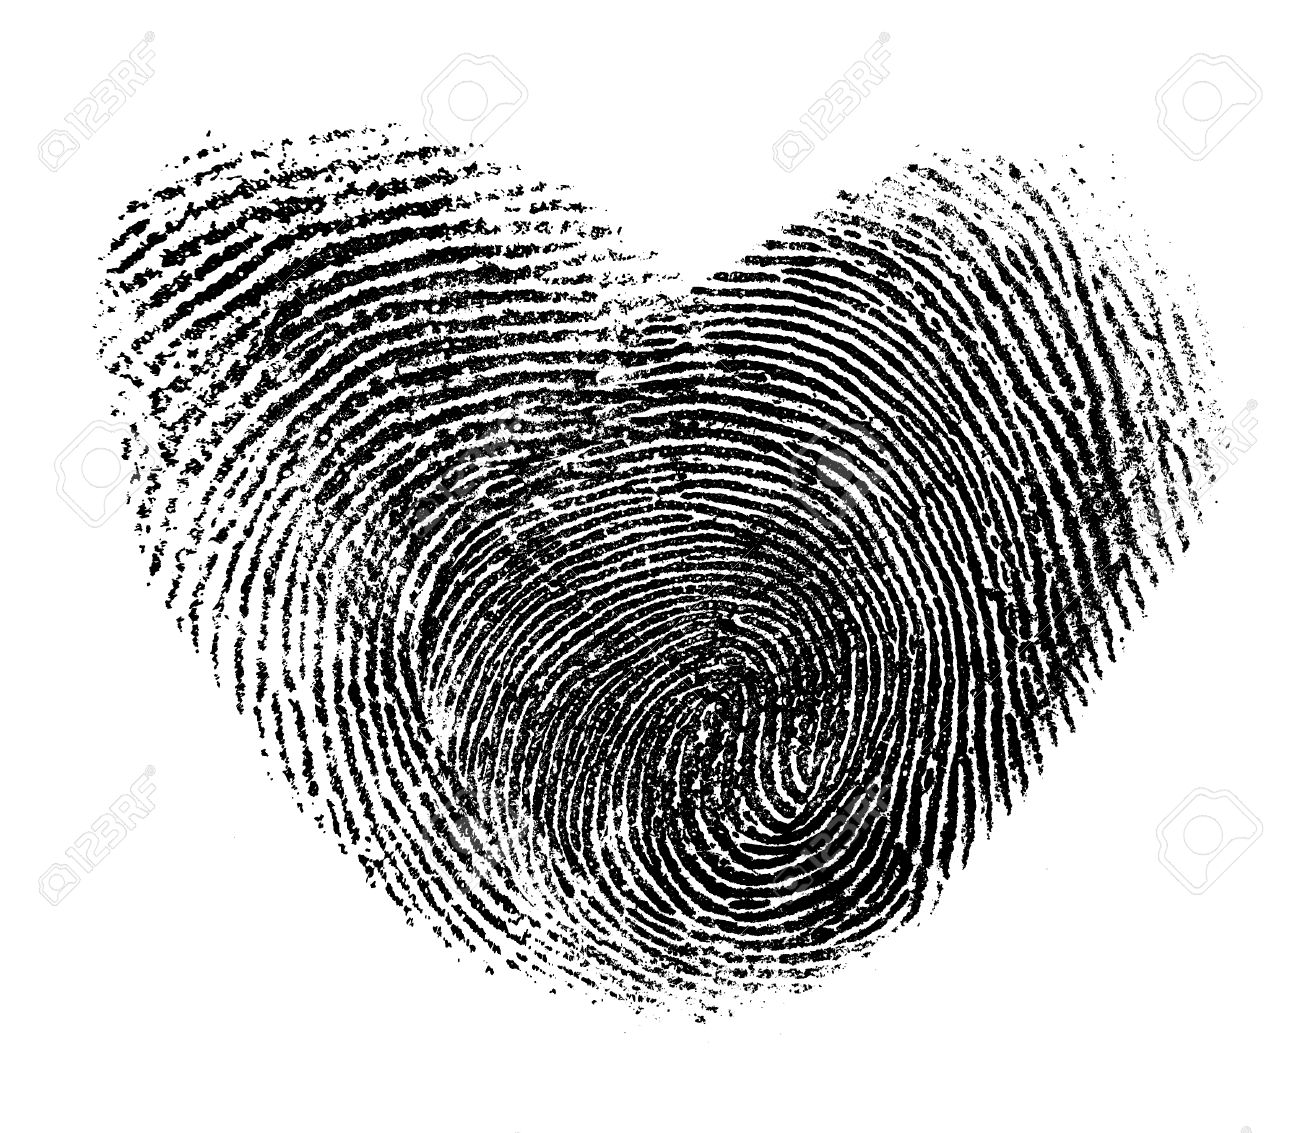 On Royalty Picture Isolated Photo Heart Free White And Image Image 26965386 Stock Fingerprint